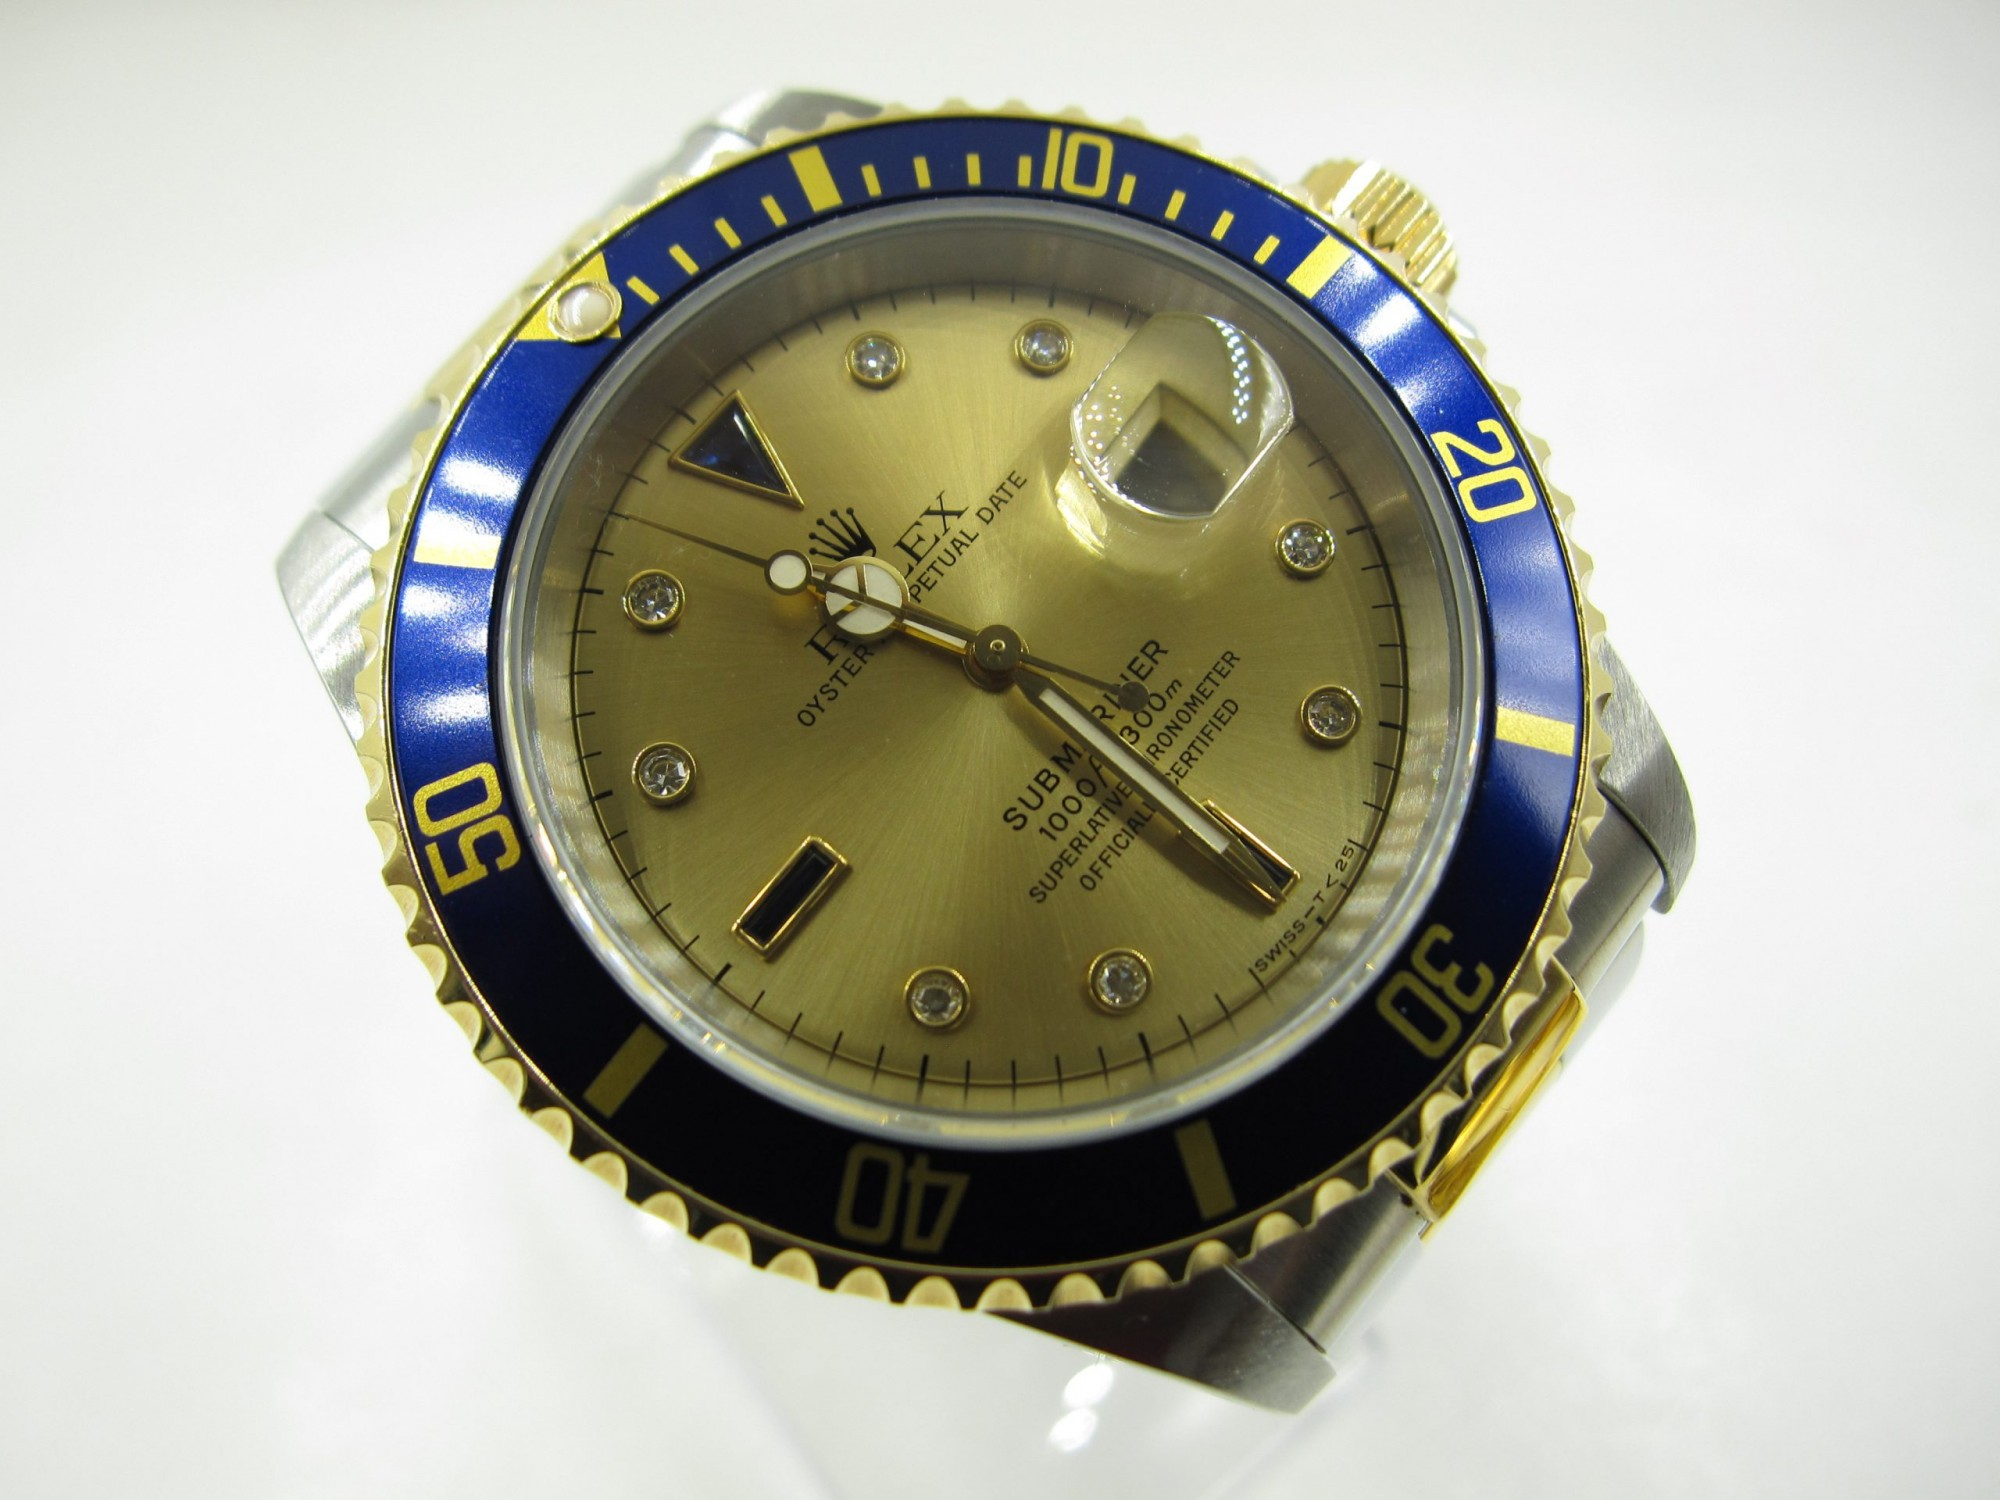 Rolex 16613 Submariner Steel And Gold(Pre-Owned Rolex Watch)RL-205 Call For Price